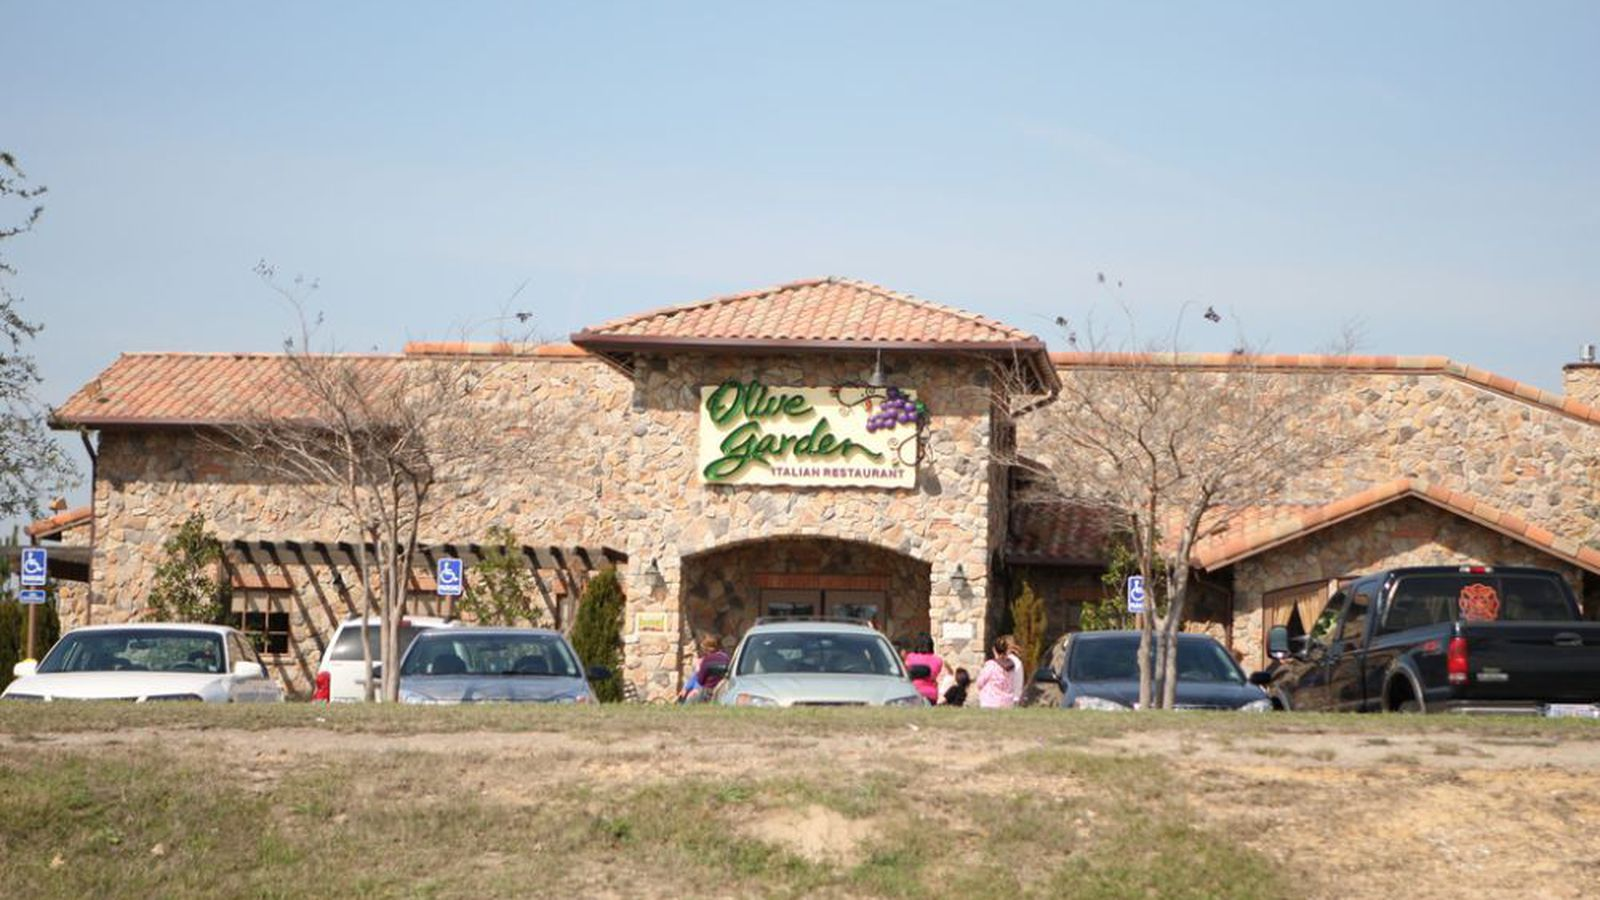 Olive Garden Entices Parents With Free Babysitting Offer